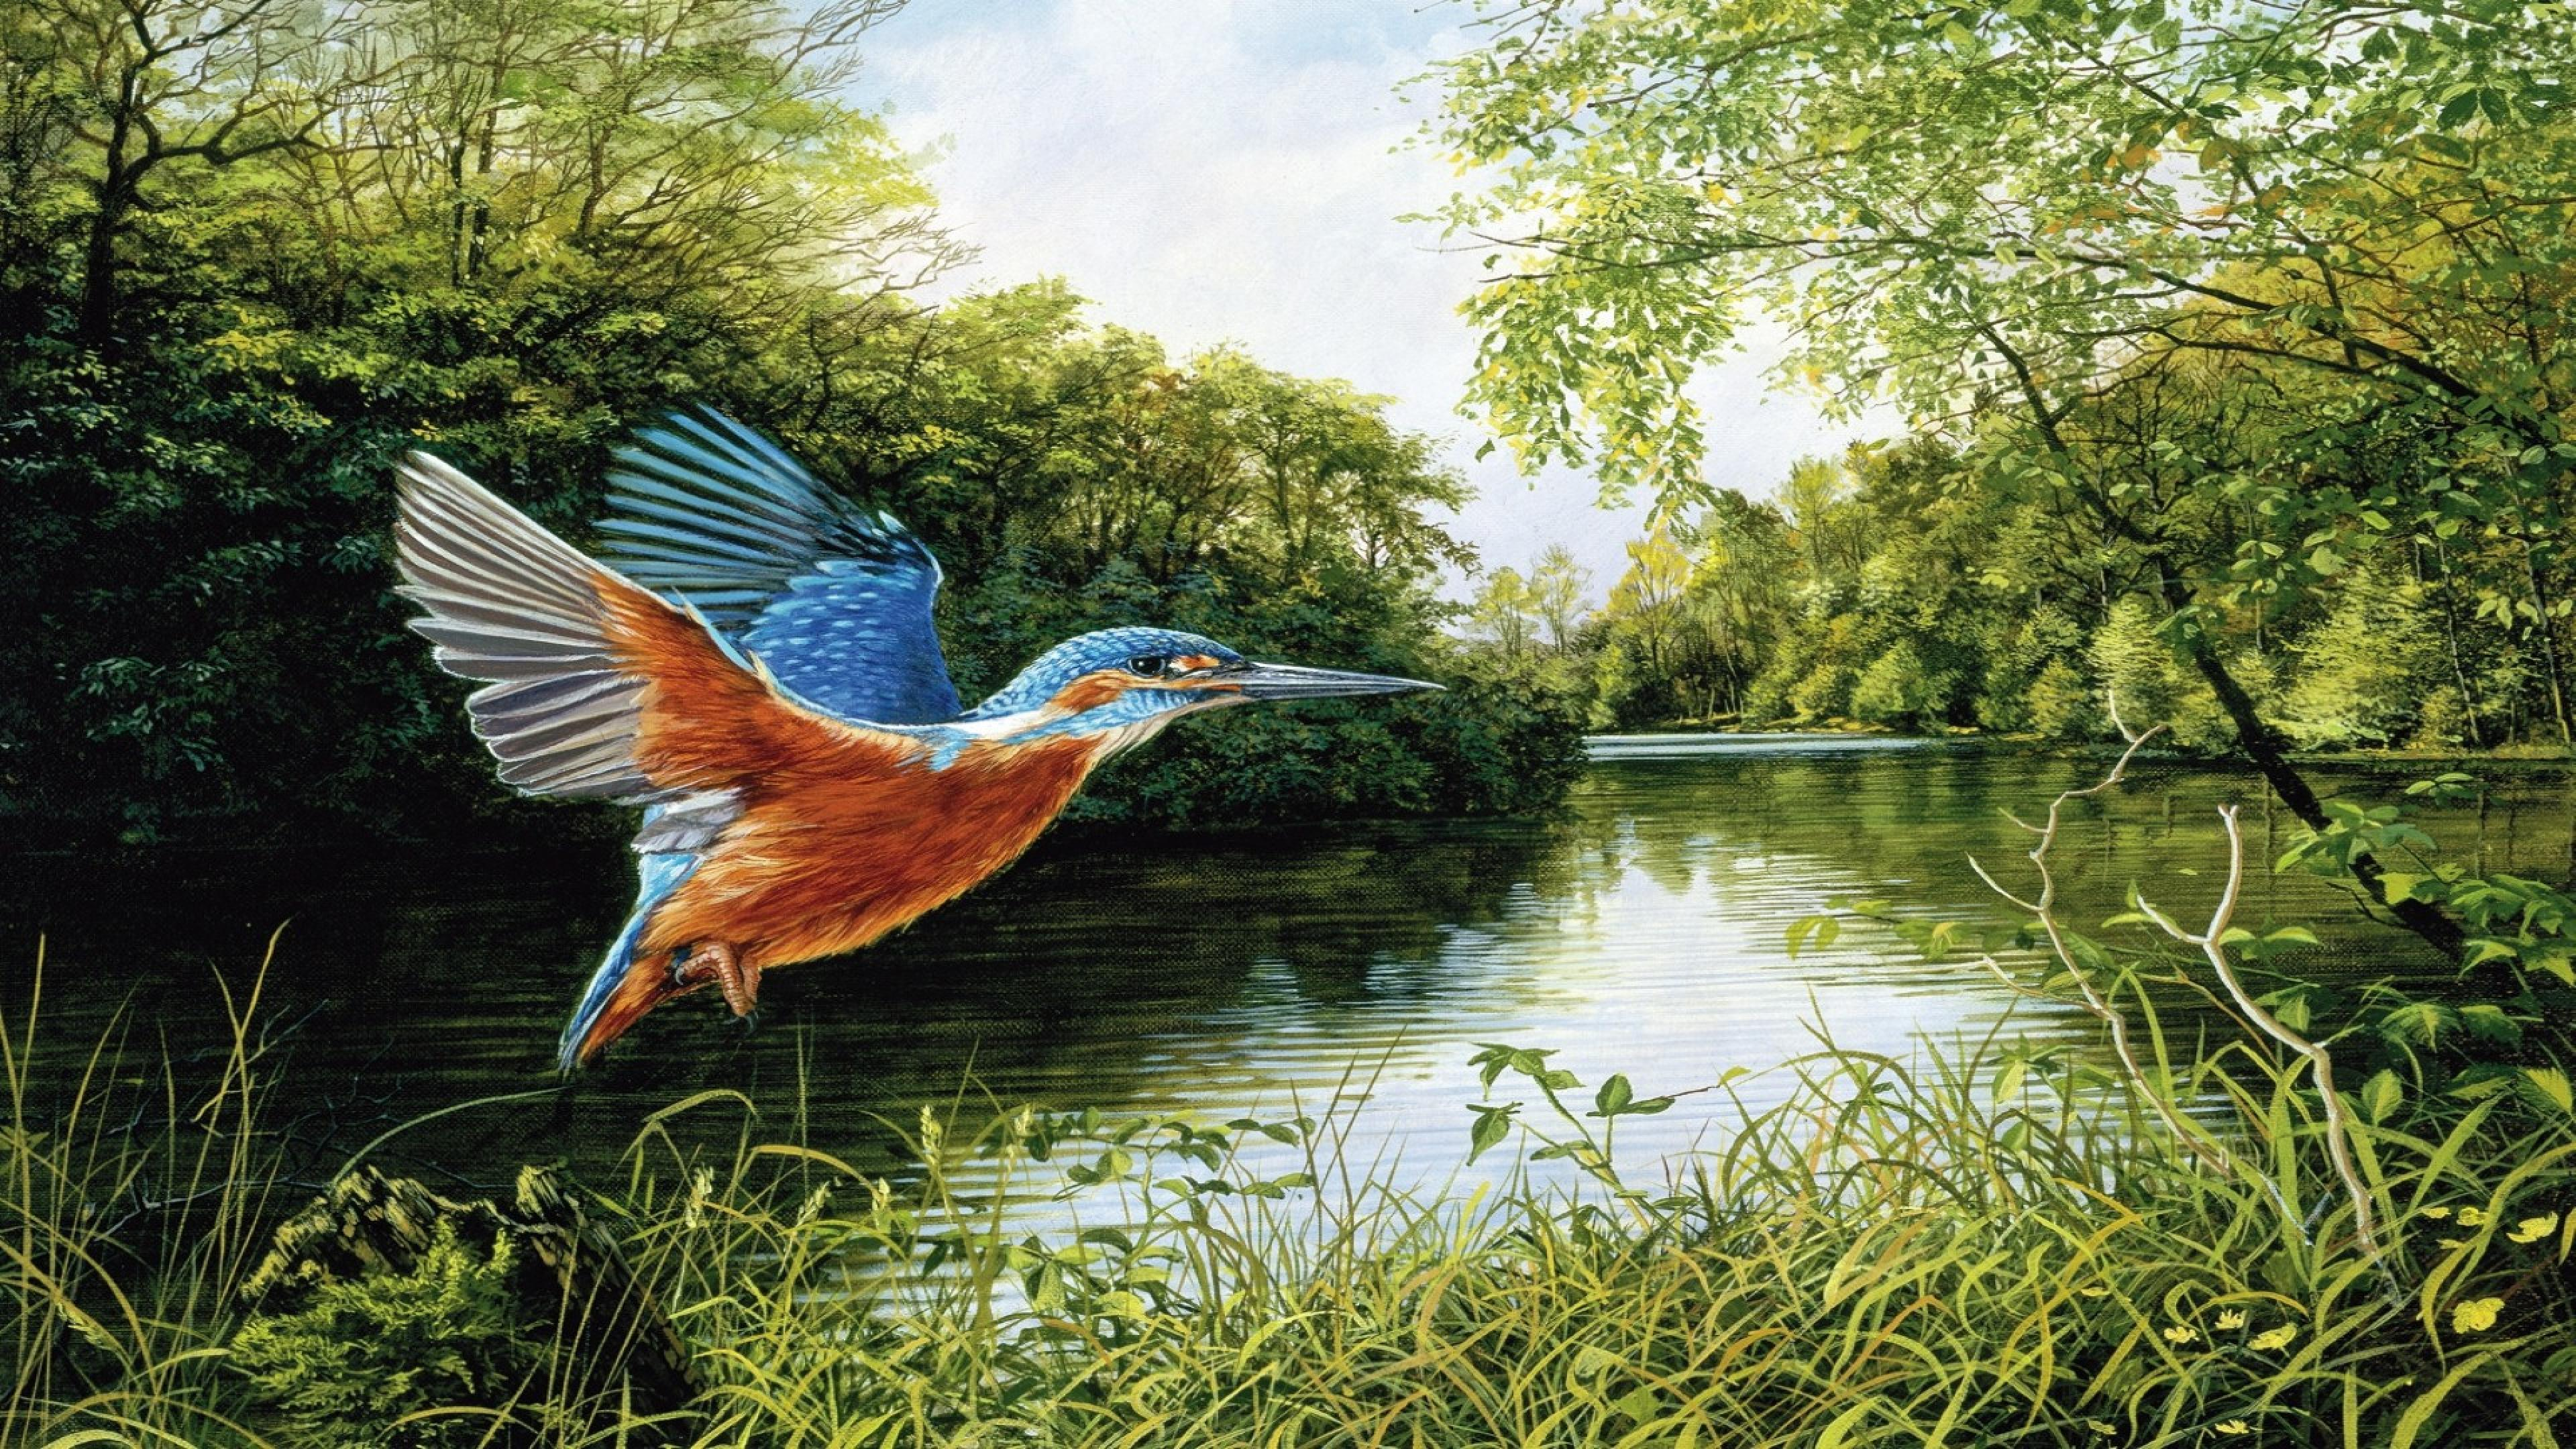 Colorful Hd Iphone Wallpapers Kingfisher Flight Green Trees Grass River Art On Canvas